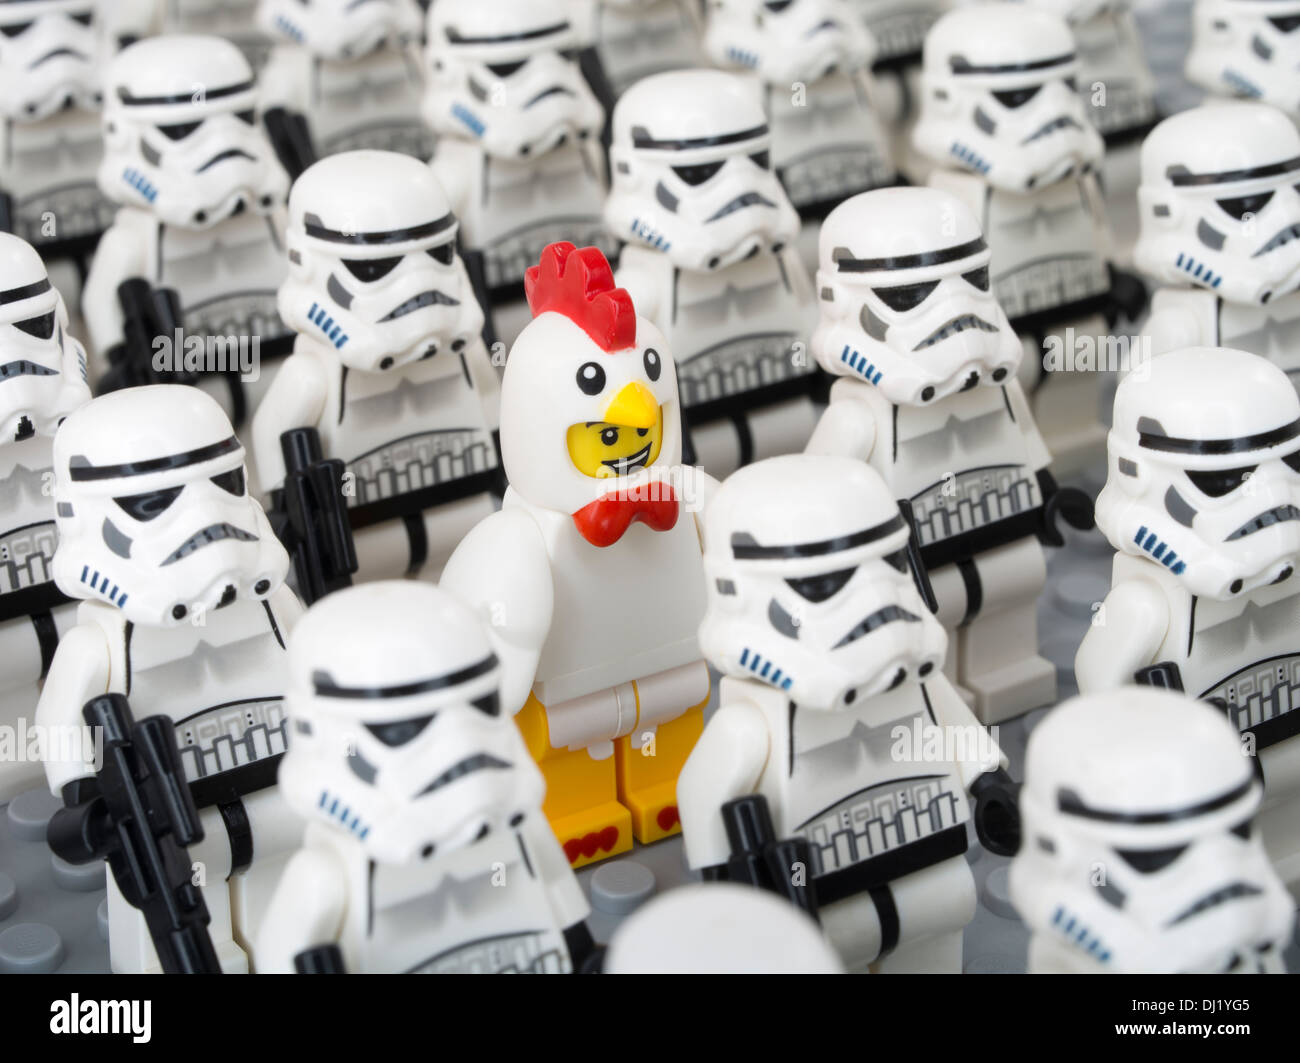 Lego Star Wars Minifigure Chicken Suit  / Storm Troopers - Stock Image